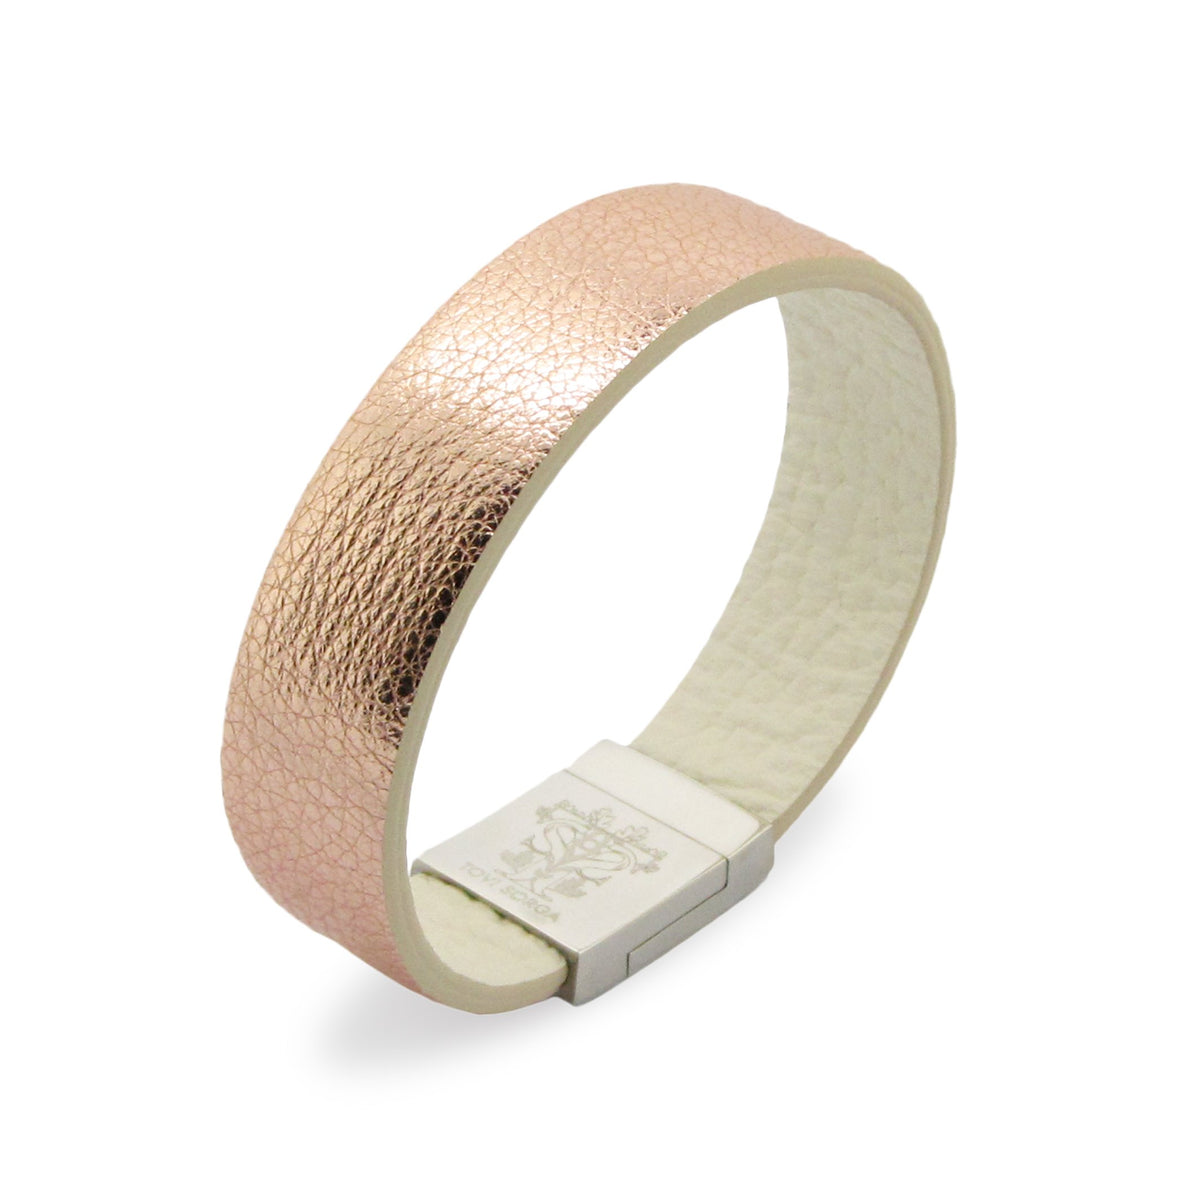 Leather Contactless Payment Bracelet: Plain Metallic Gold / Rose Gold